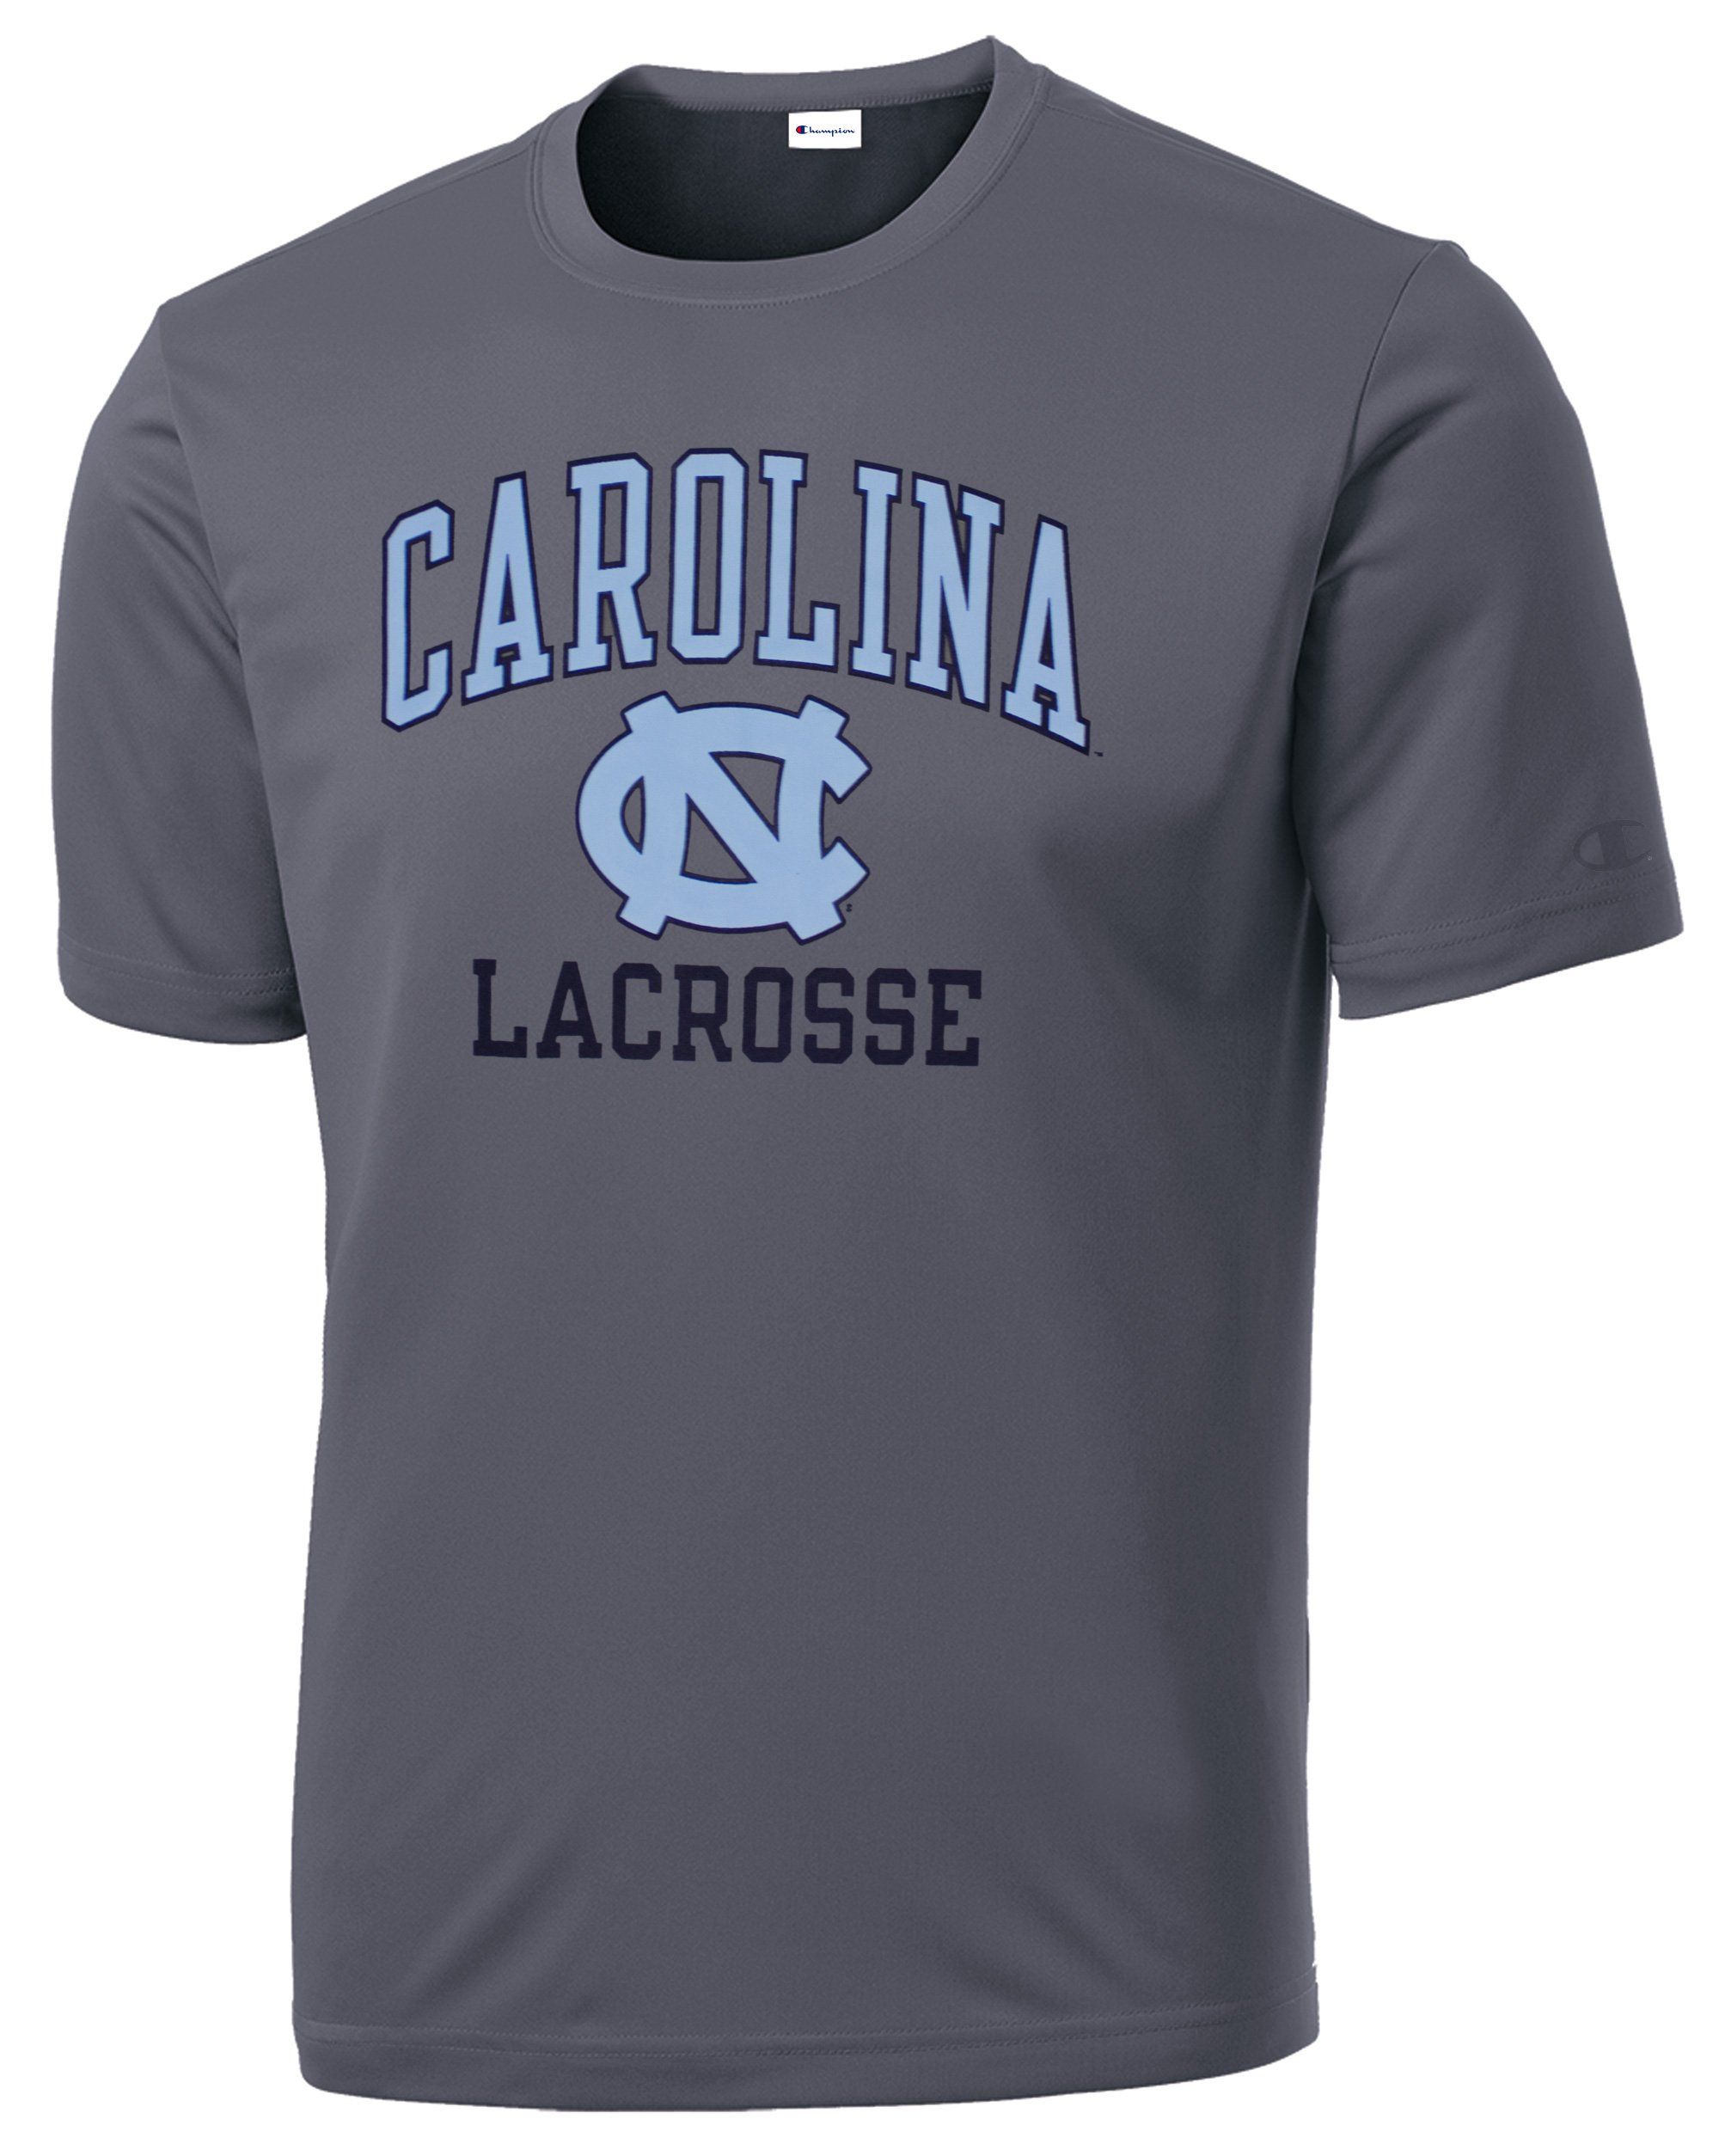 North Carolina Tar Heels Lacrosse Tee - Youth-XLarge